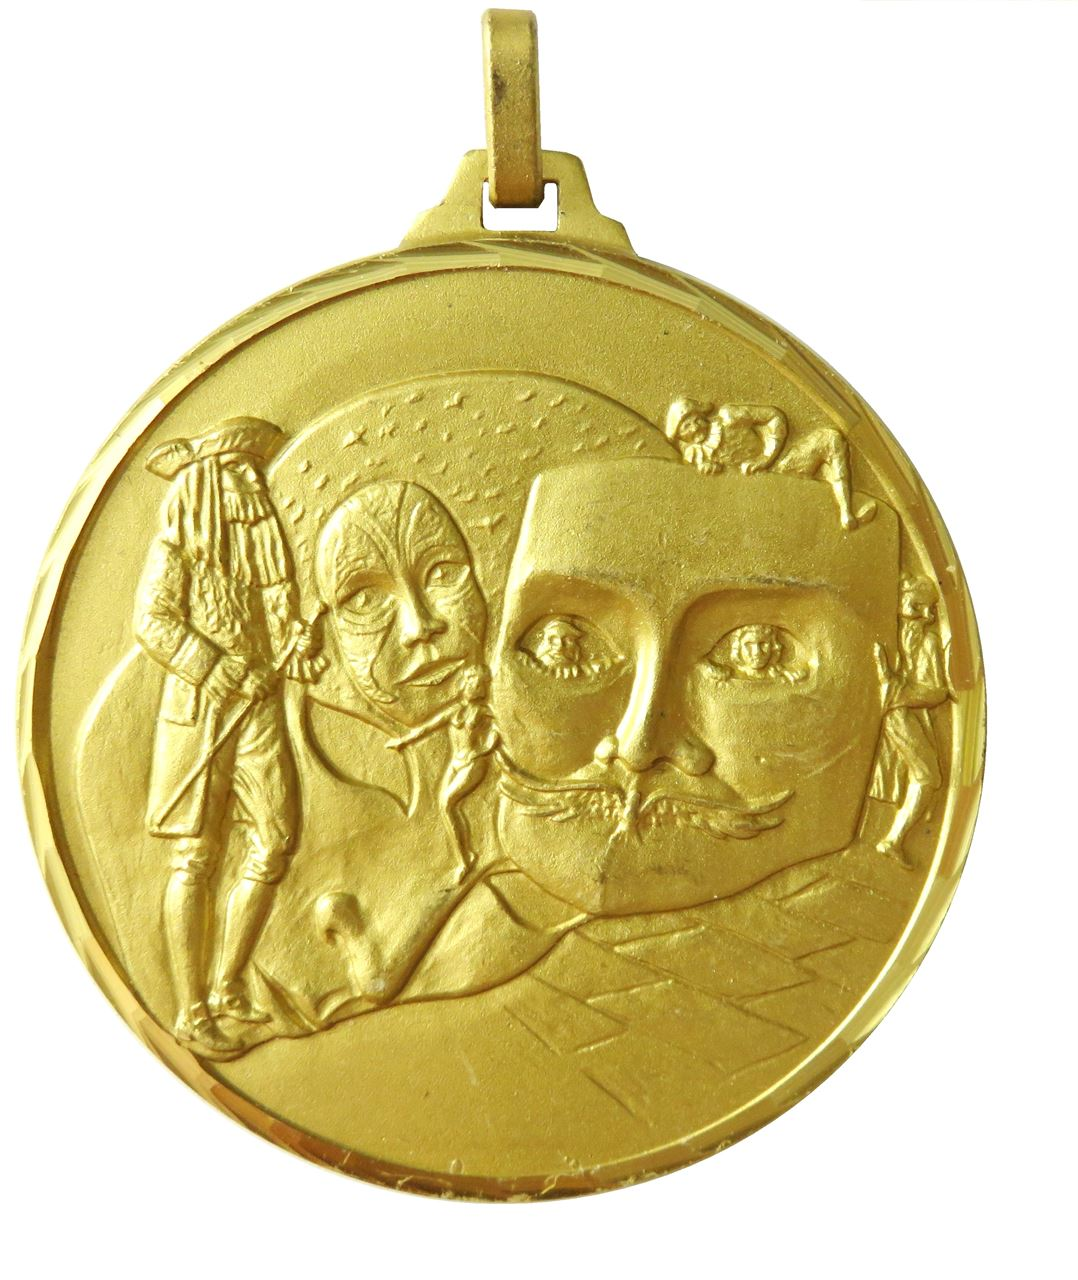 Gold Faceted Drama Medal (size: 52mm) - 234F